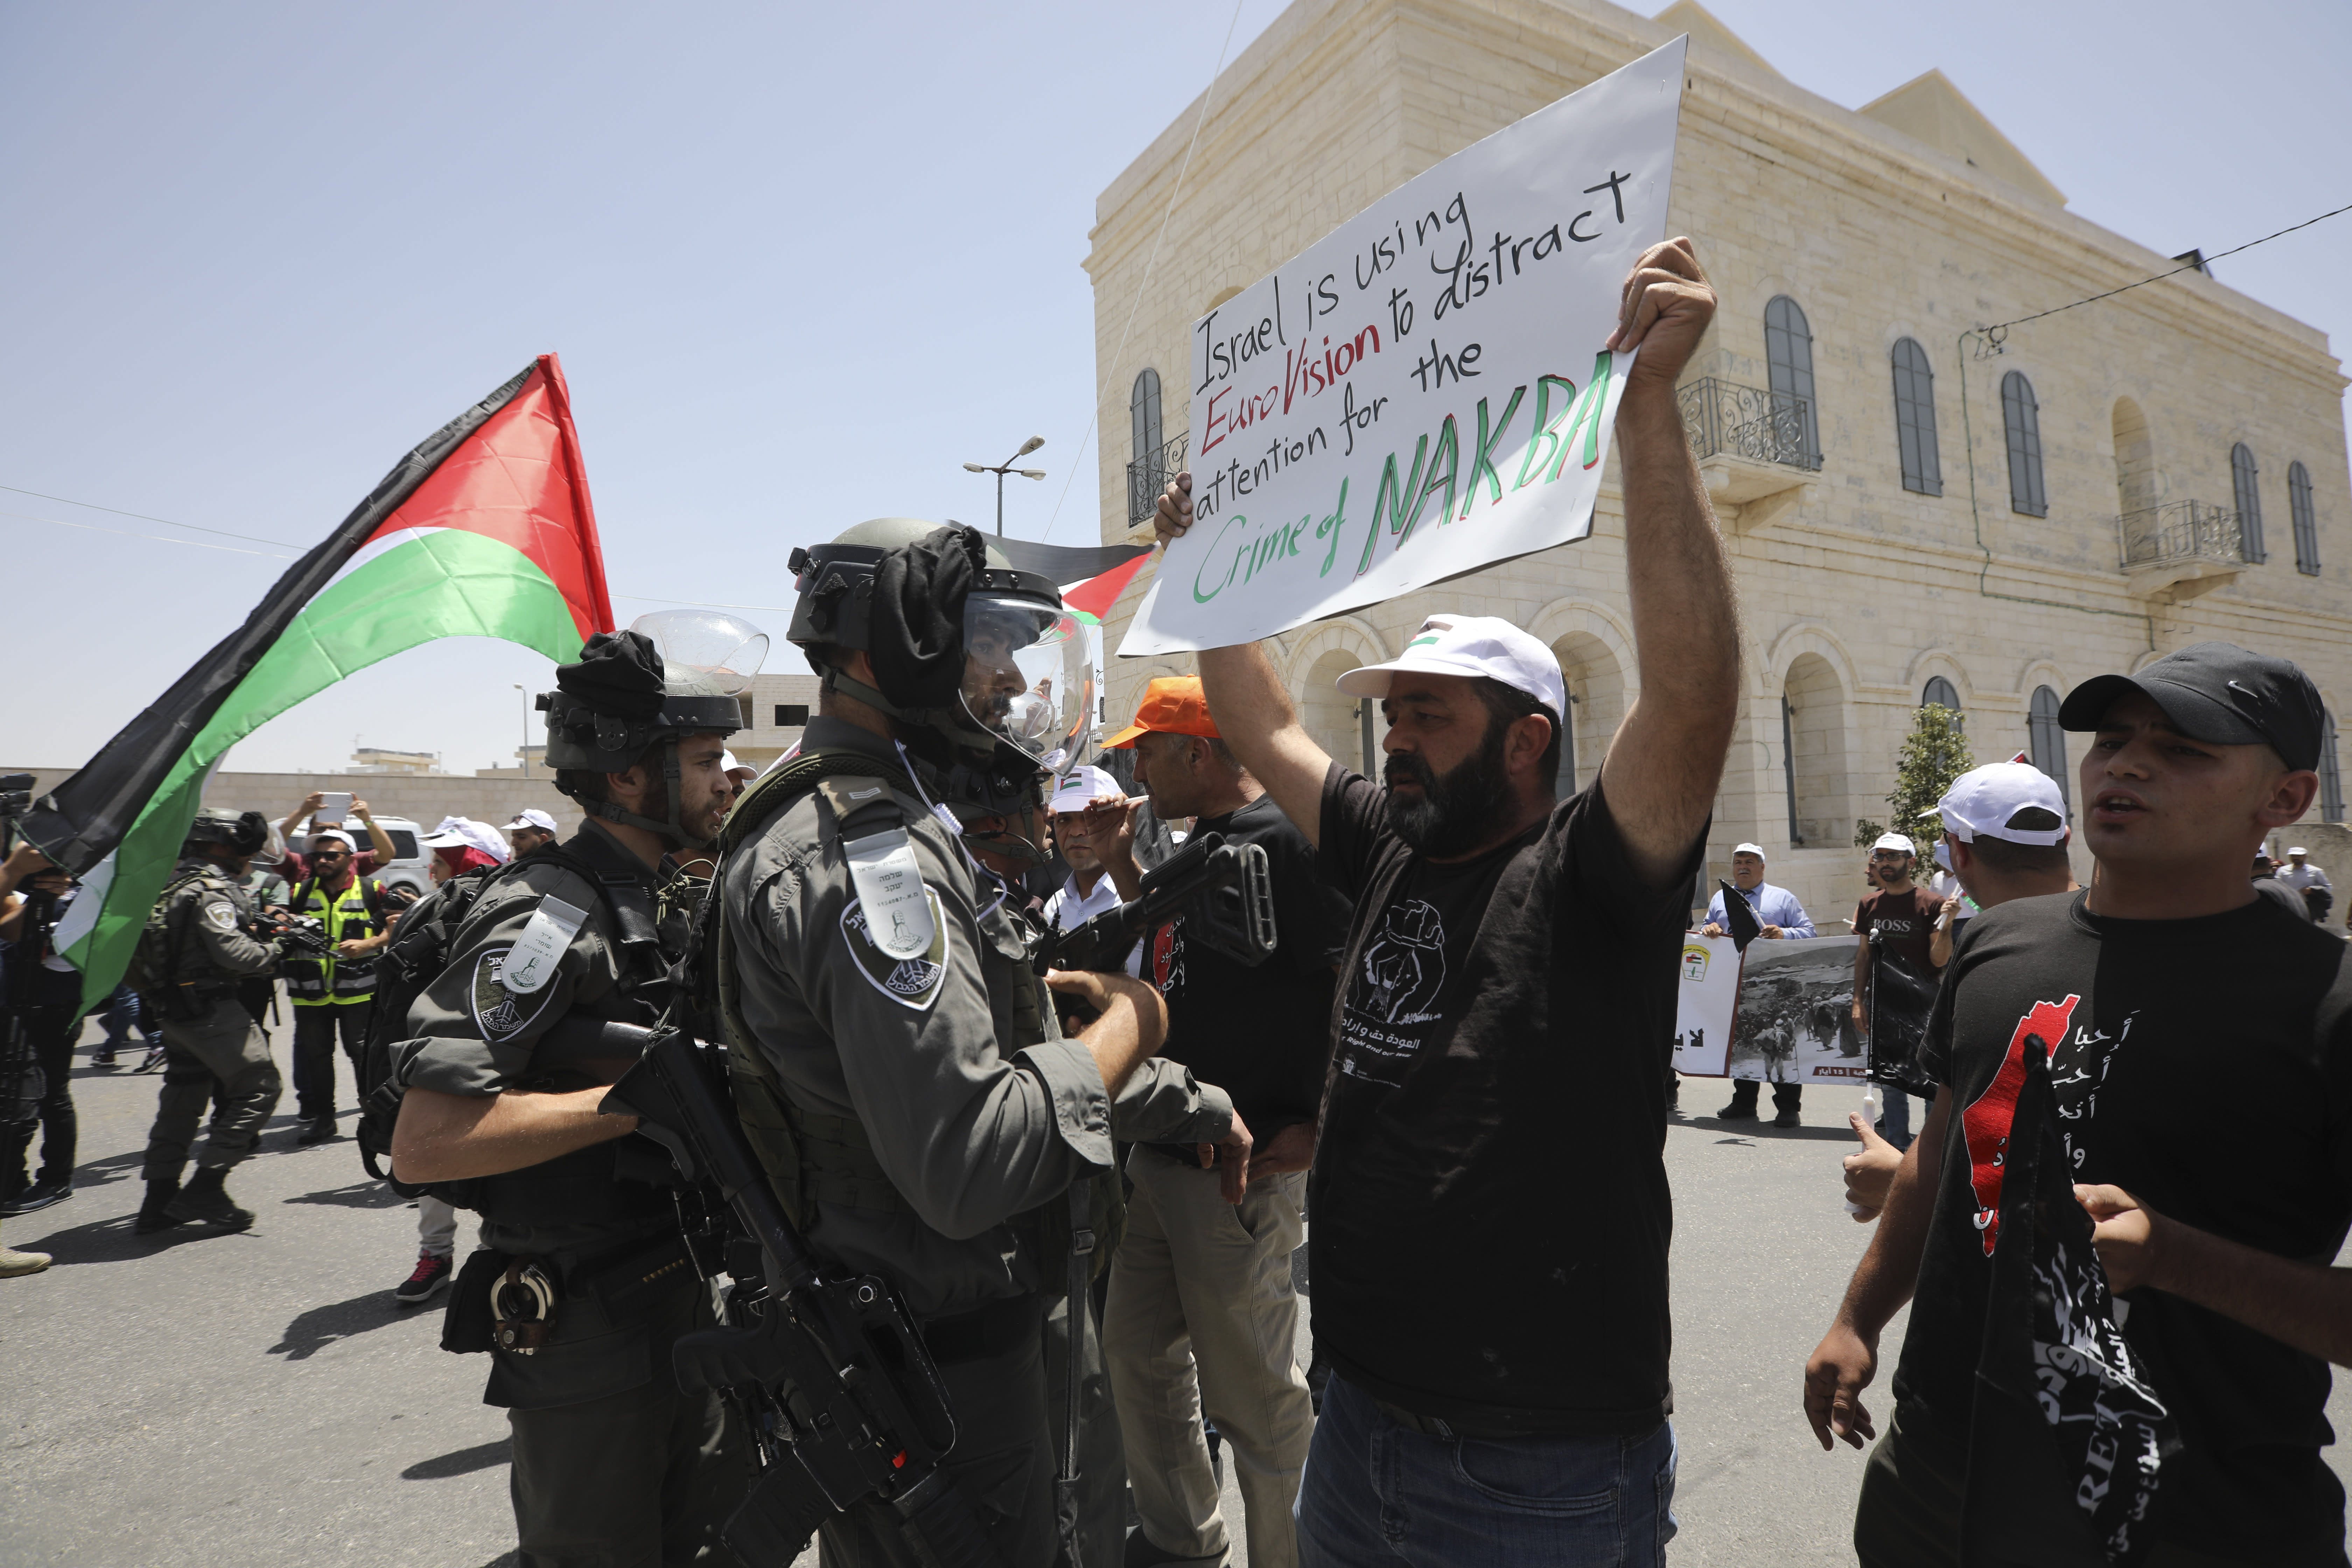 """A man holding anti-Eurovision banner confronts an Israeli border policeman as Palestinian marked the 71st anniversary of their mass displacement during the 1948 war around Israel's creation. Demonstrations were held across the Israeli-occupied West Bank and the Gaza Strip on Wednesday to mark what the Palestinians call the """"nakba,"""" or """"catastrophe."""" (AP Photo/Mahmoud Illean)"""